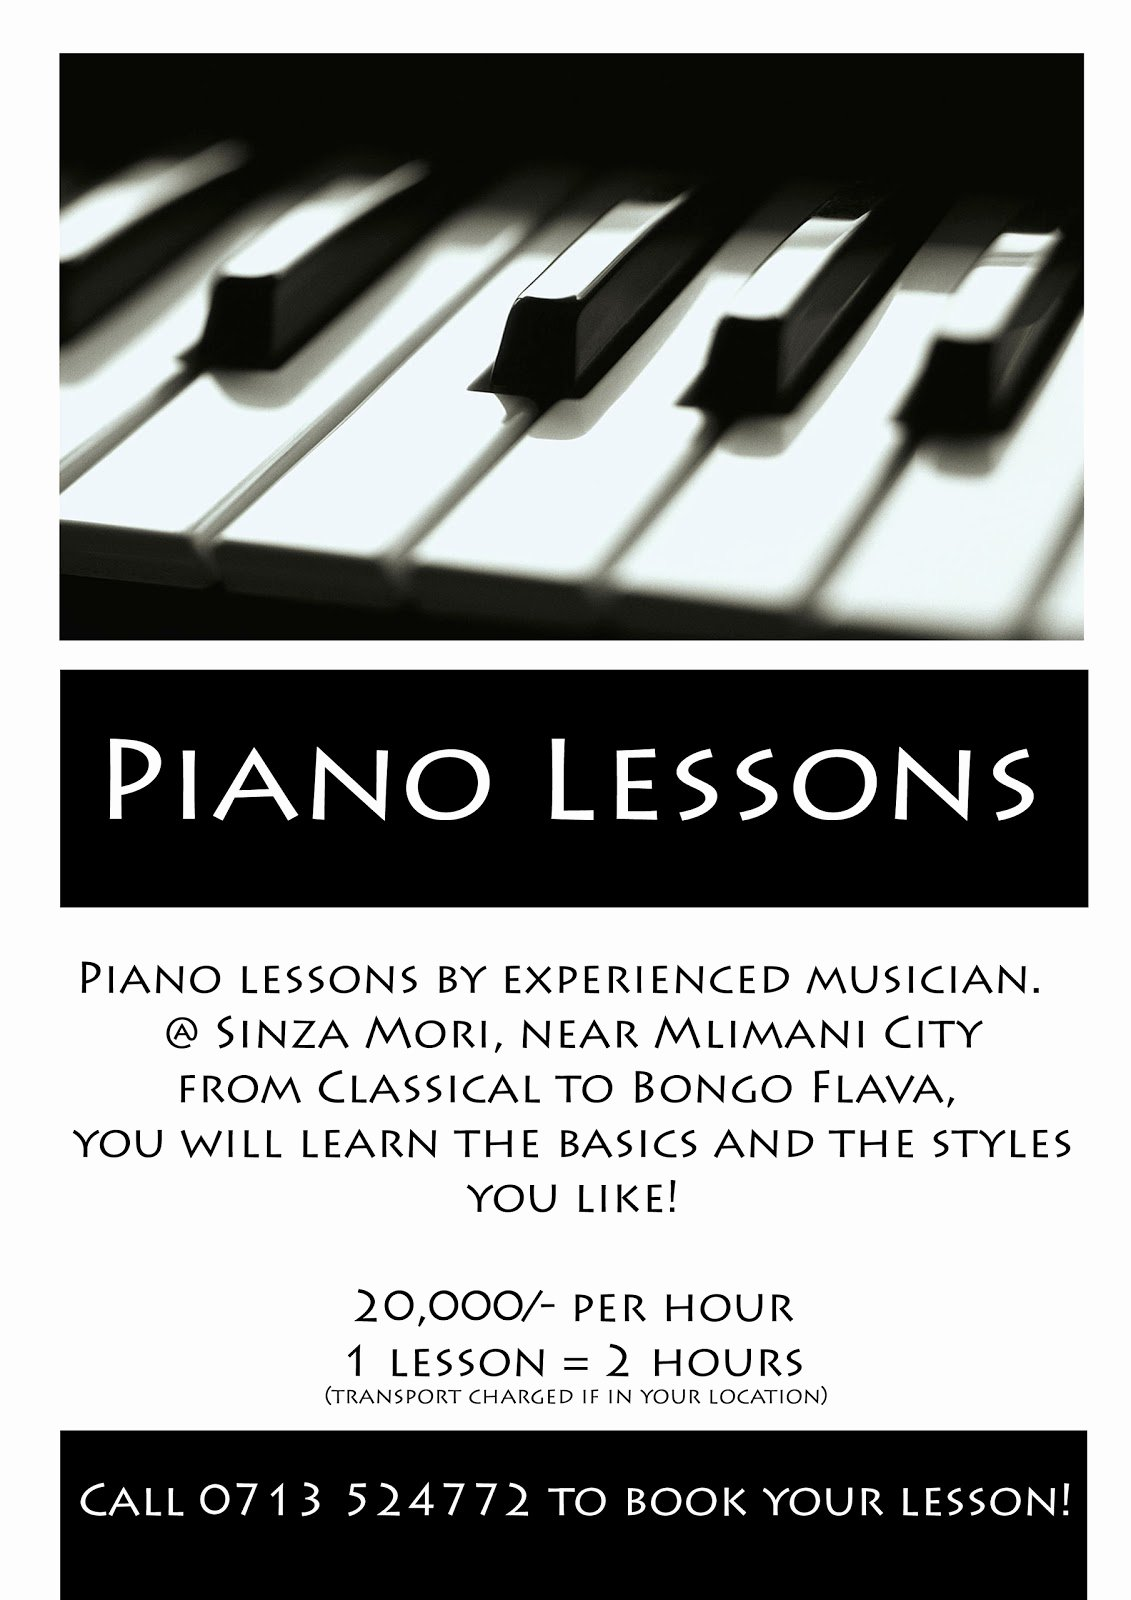 Music Lesson Flyer Template Luxury Ronnaprekle S Blog